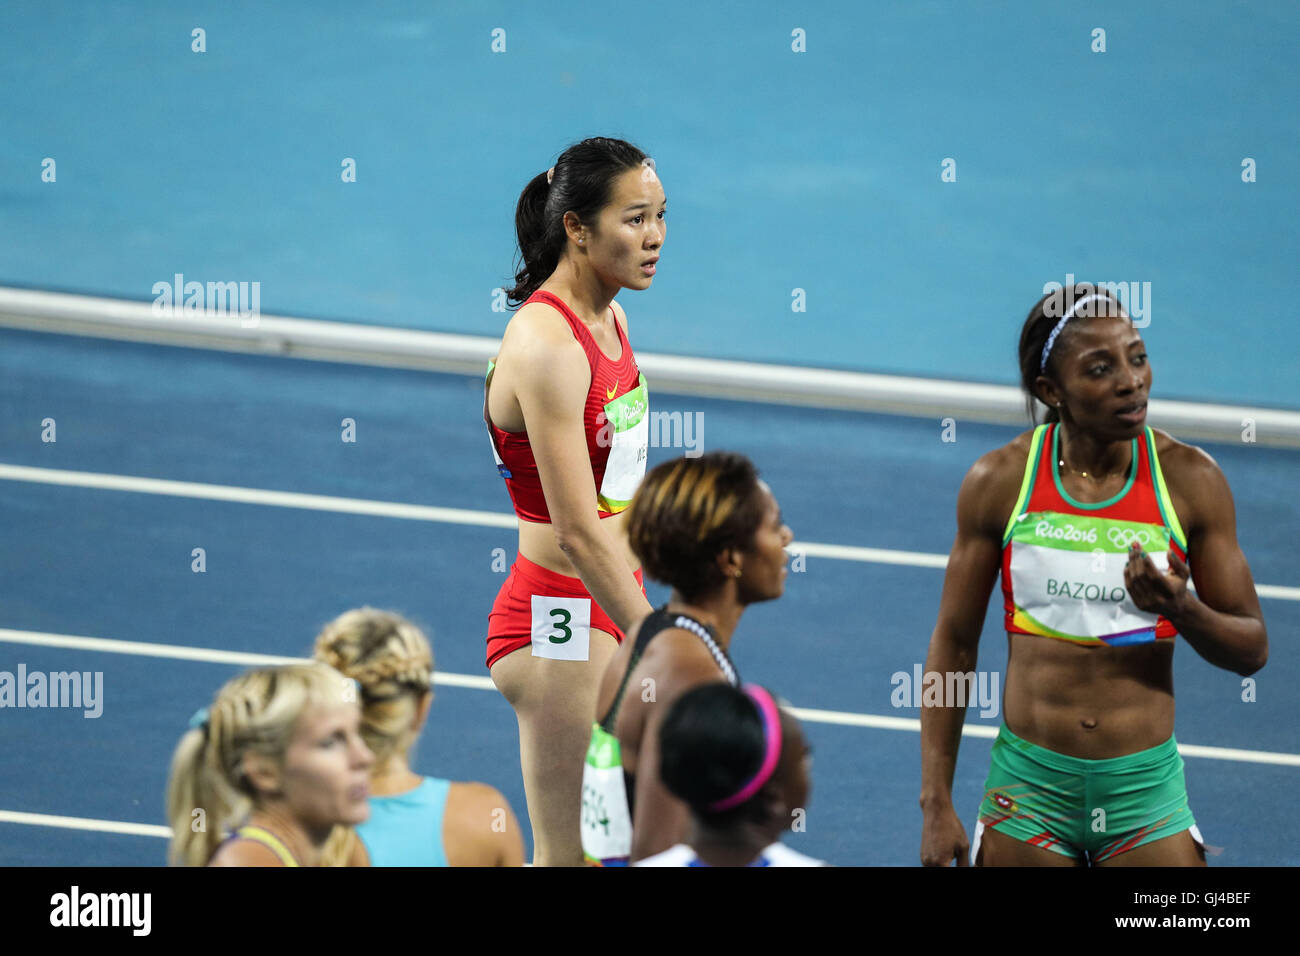 Rio De Janeiro, Brazil. 12th Aug, 2016. Wei Yongli of China (3th L) reacts after the women's 100m heat at the - Stock Image